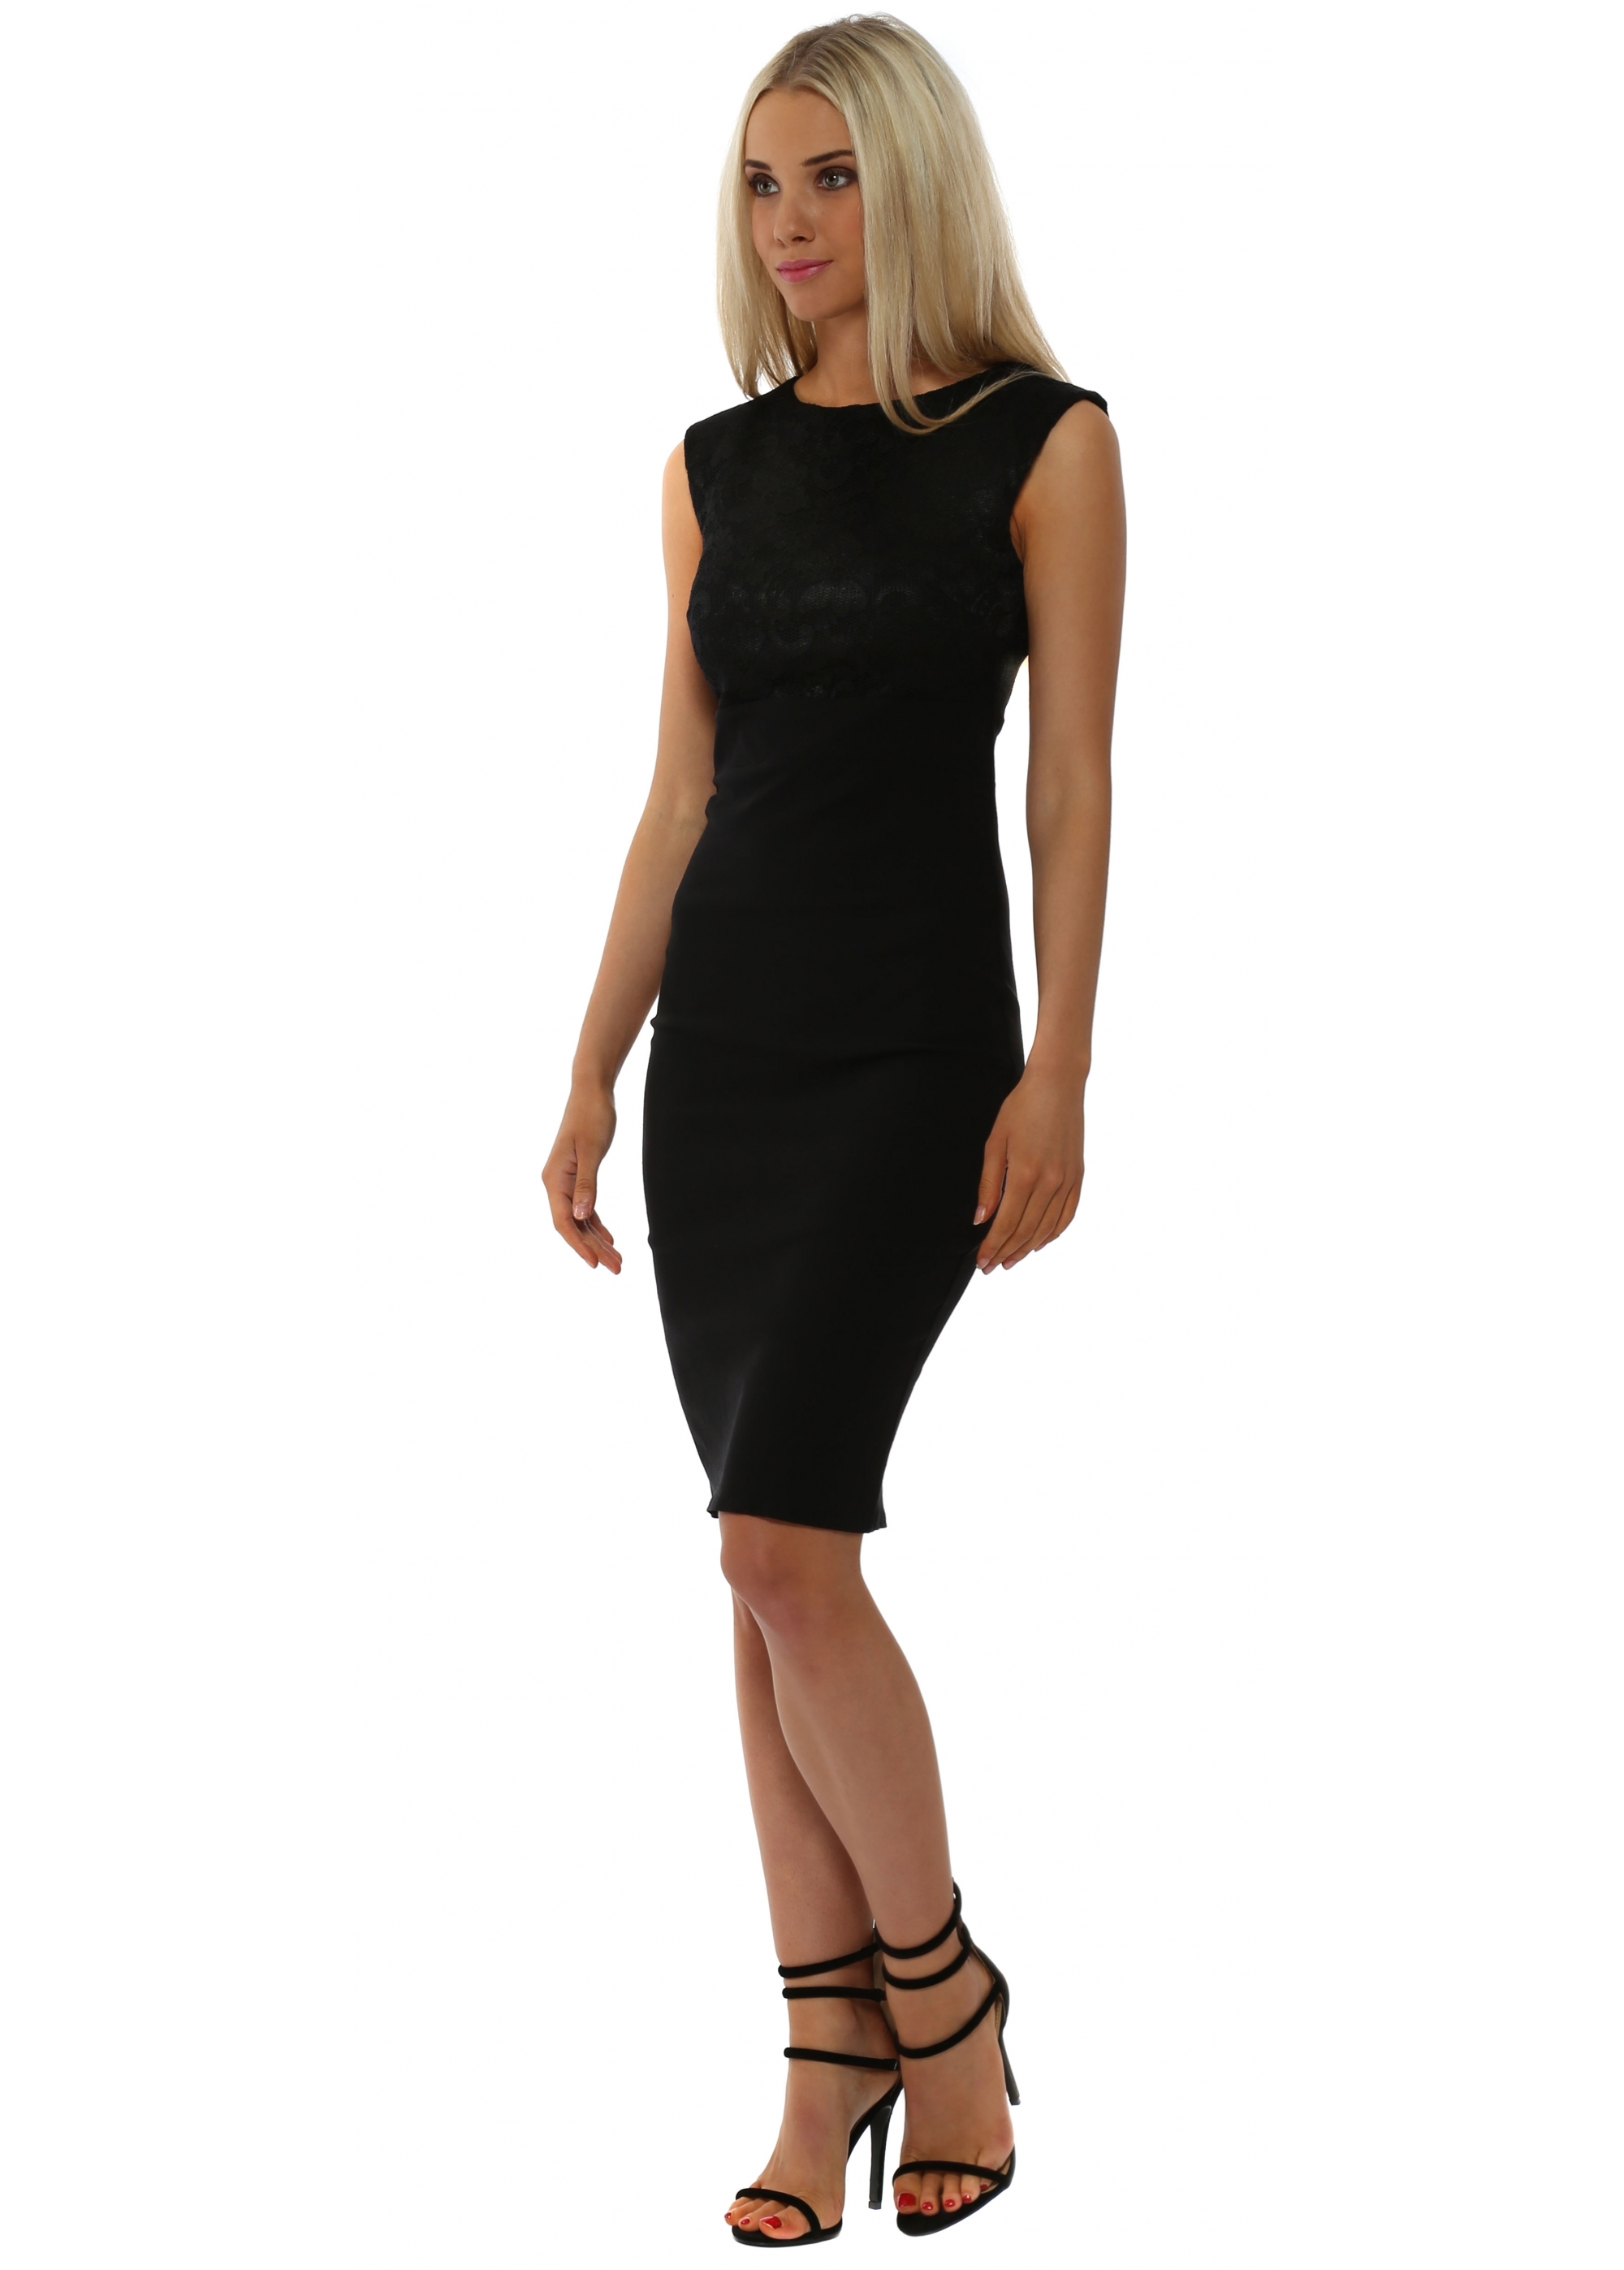 Goddess London Dress Black Lace Designer Pencil Dress